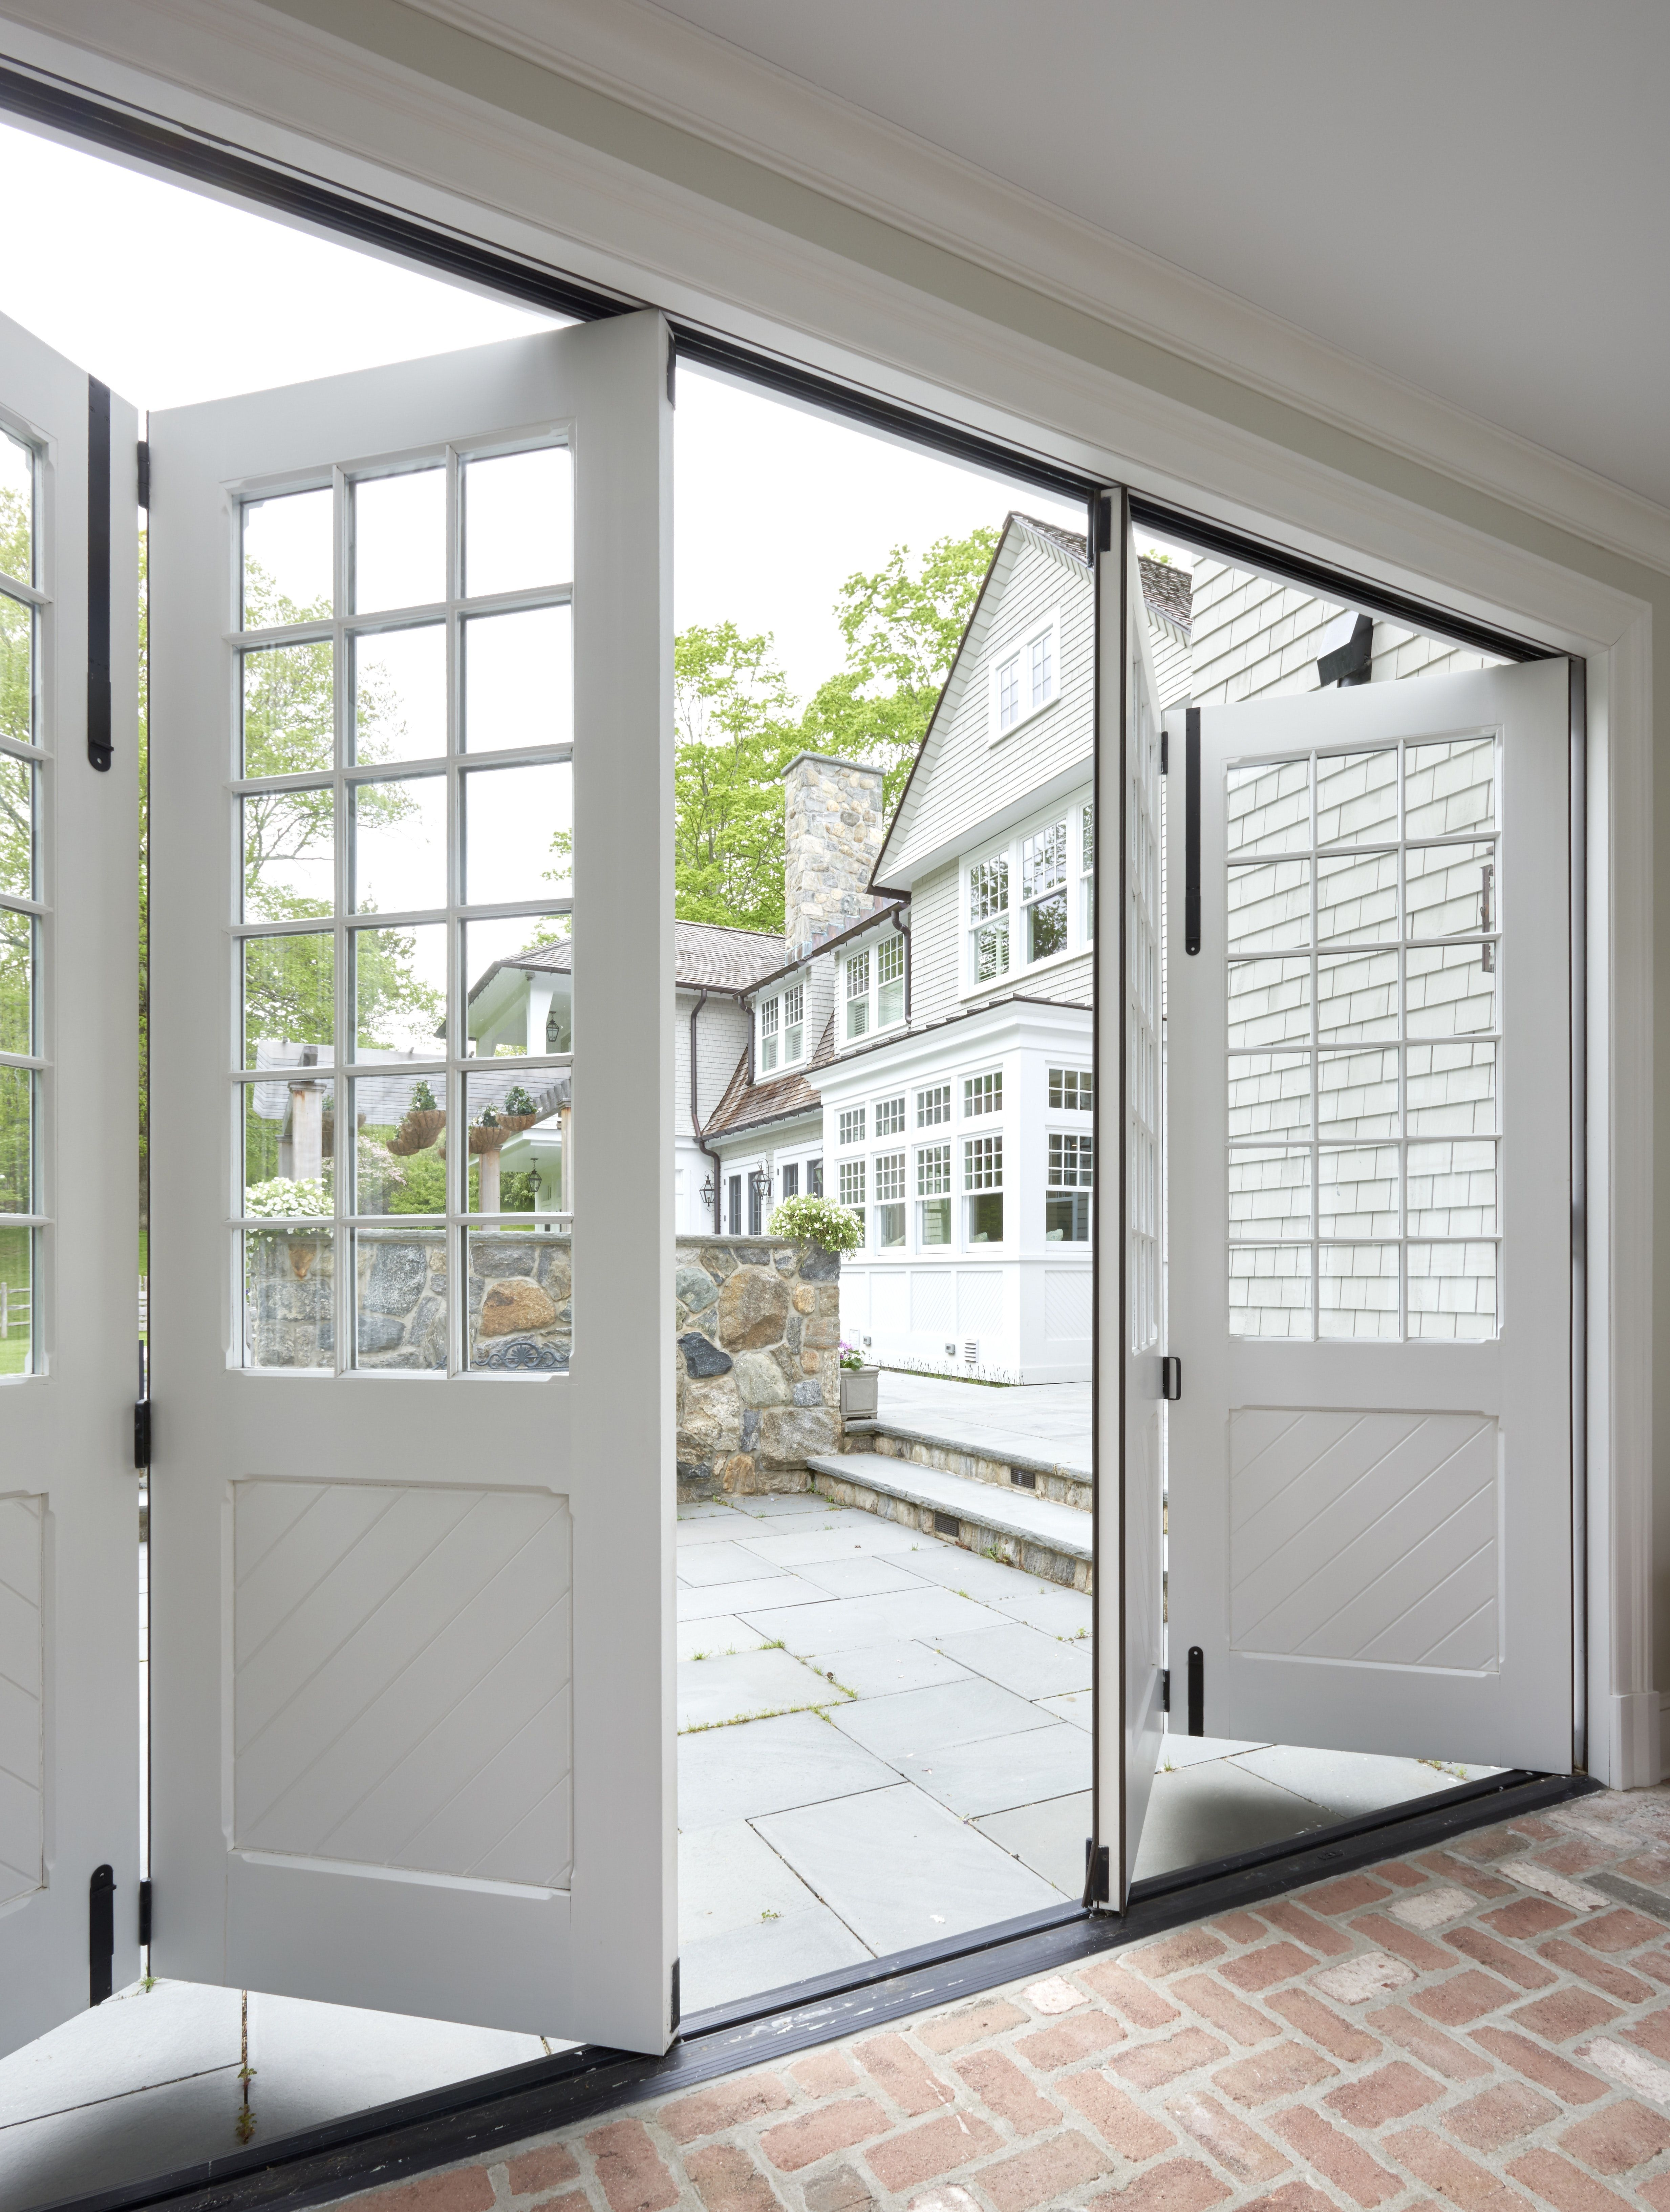 Breezeway With Sliding Doors And View To Rear Terrace Garage Door Design Garage Doors Garage Door Styles